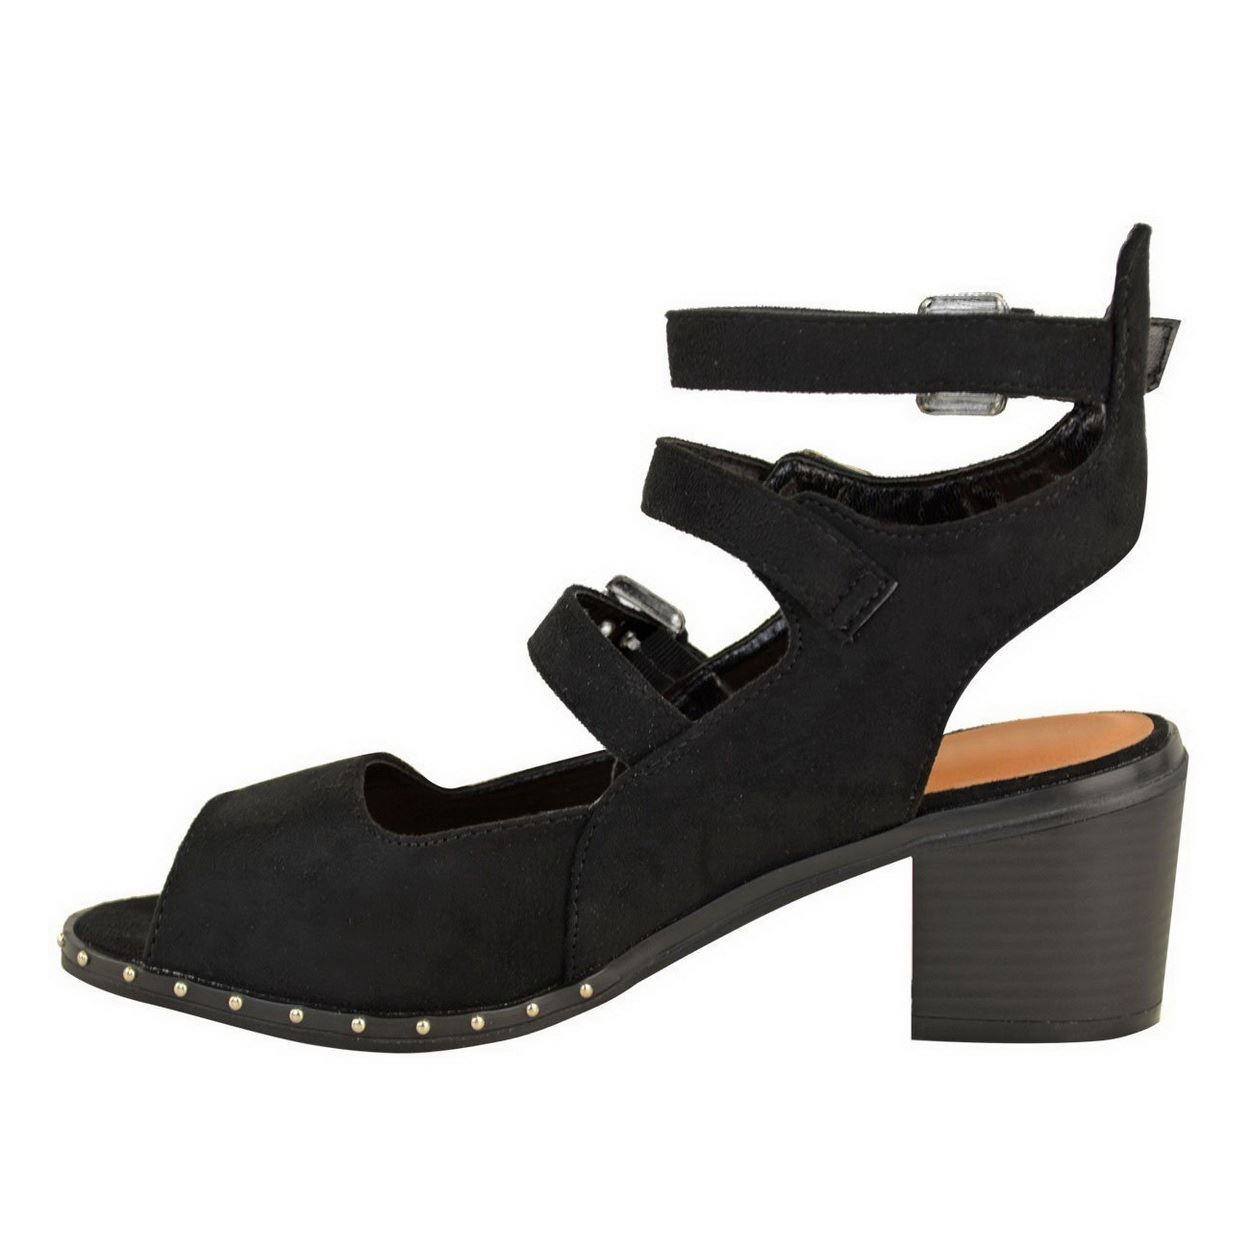 WOMENS LADIES LOW MID BLOCK HEEL BUCKLE CUT OUT ANKLE STRAPPY SANDALS SHOES SIZE